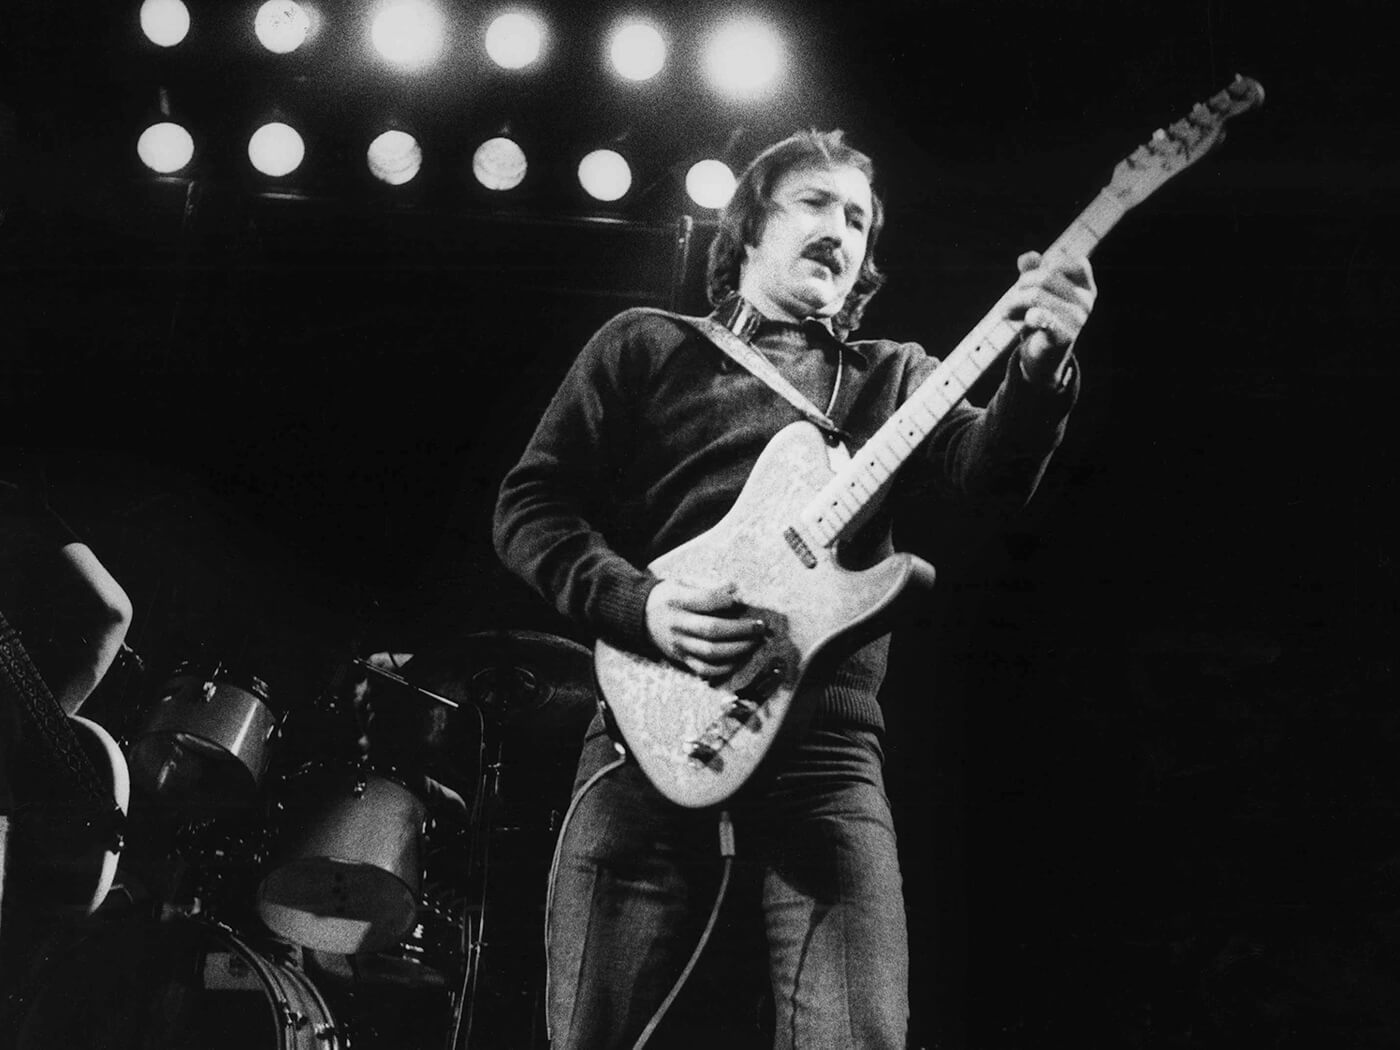 James Burton with Paisley Tele